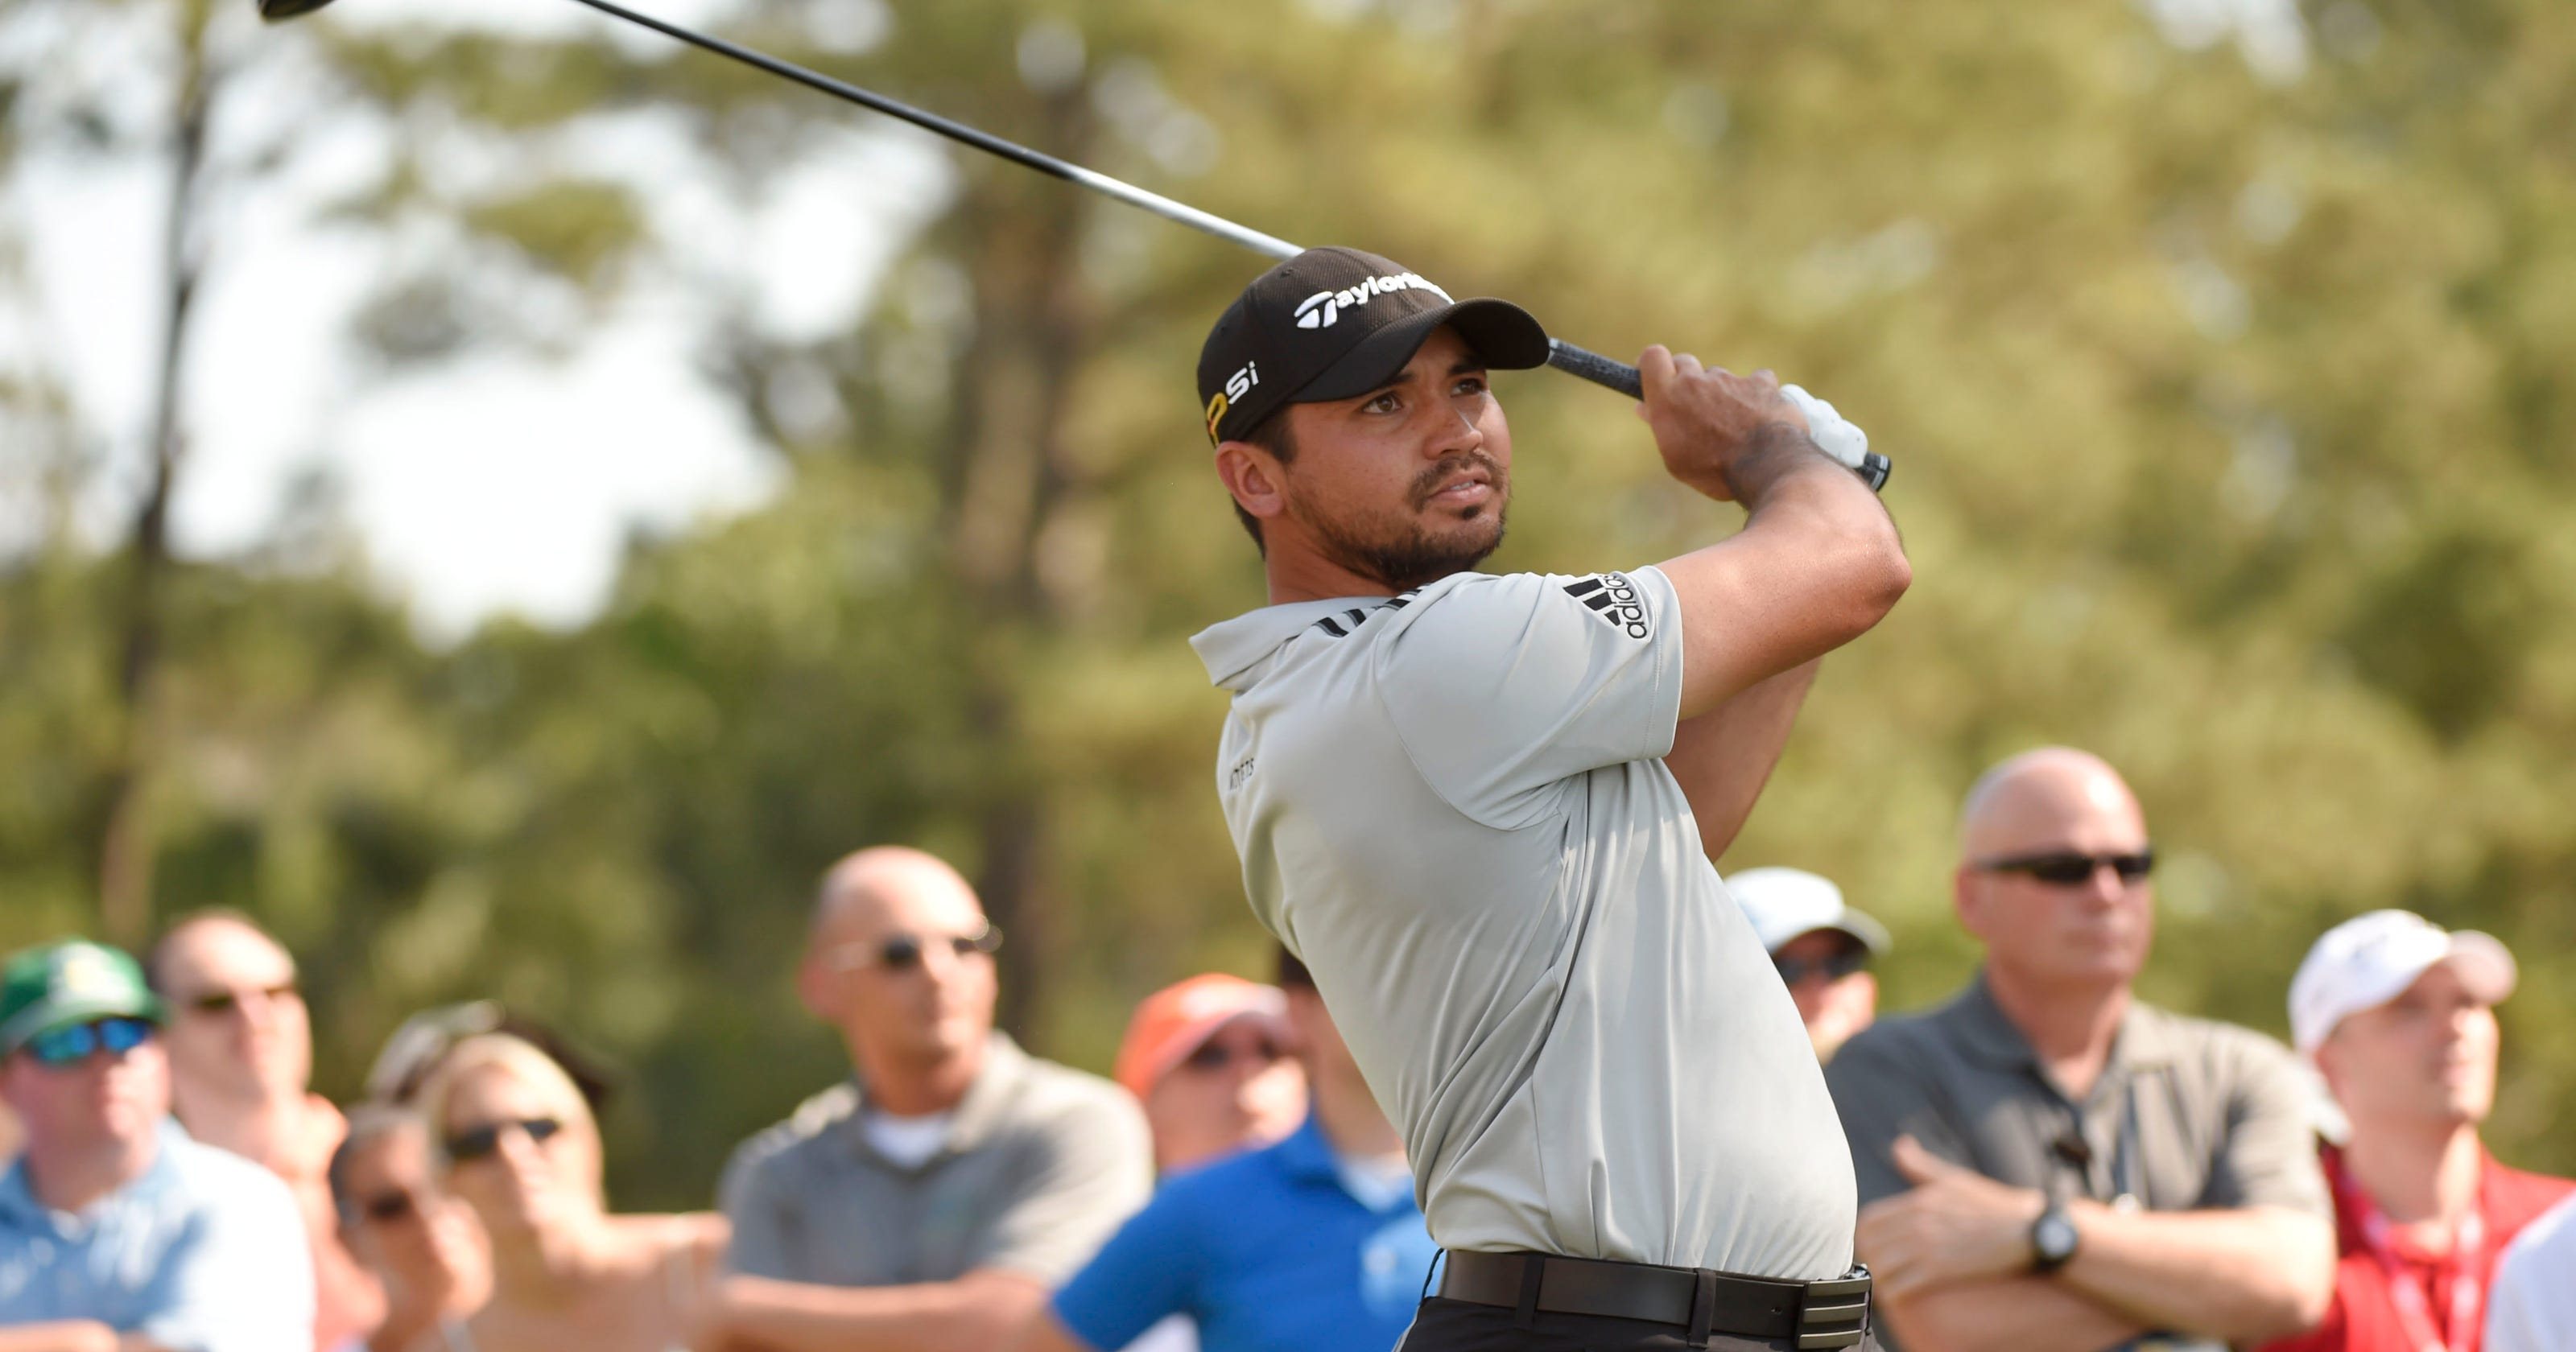 Jason Day fires round of 63 at Players Championship